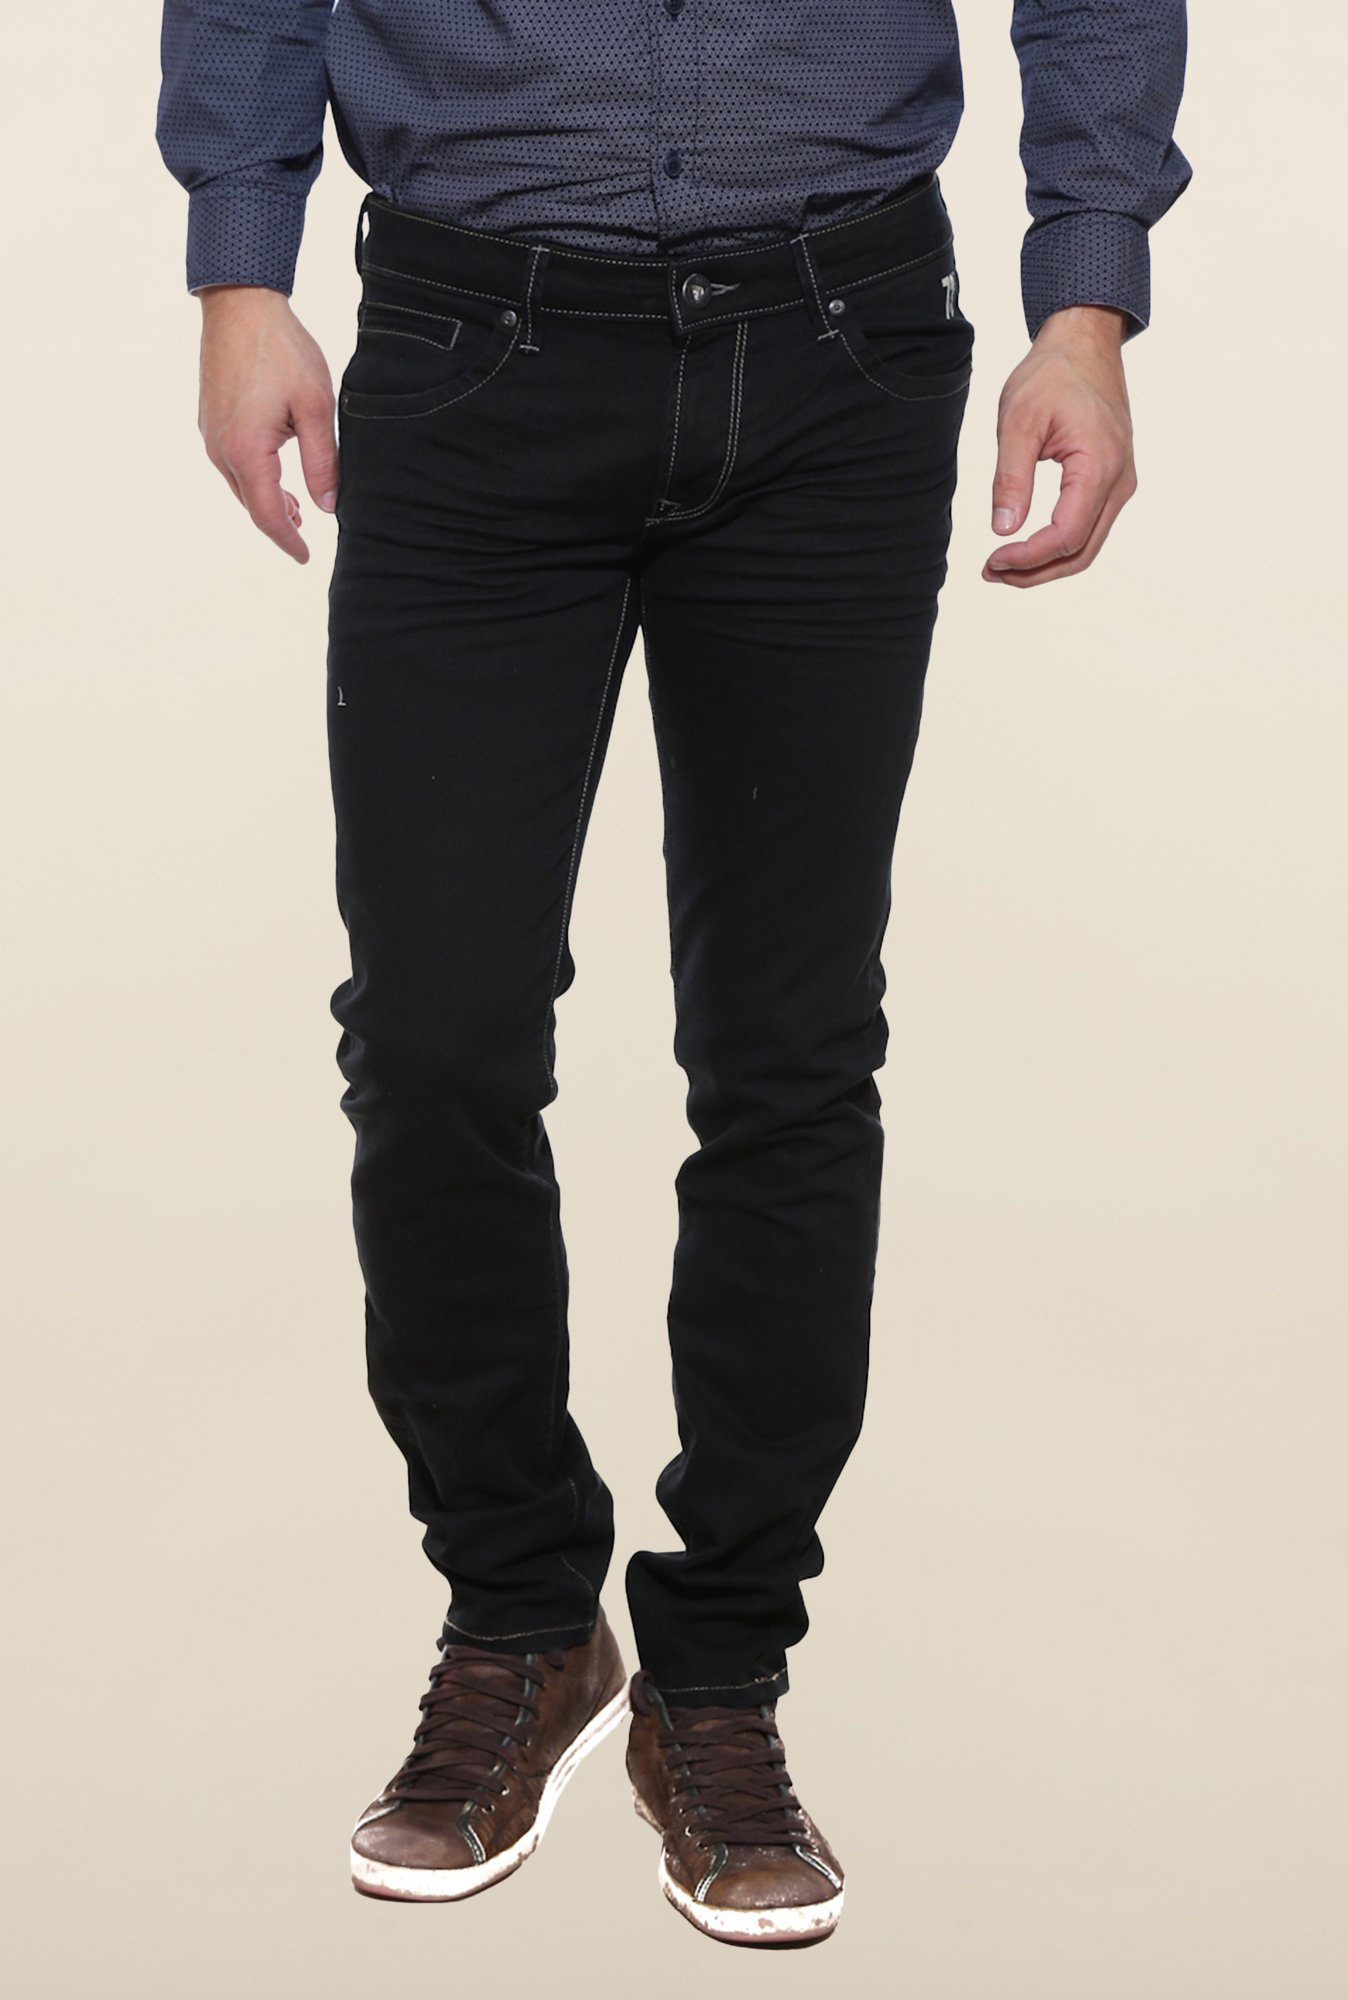 Pepe Jeans Black Raw Denim Solid Jeans